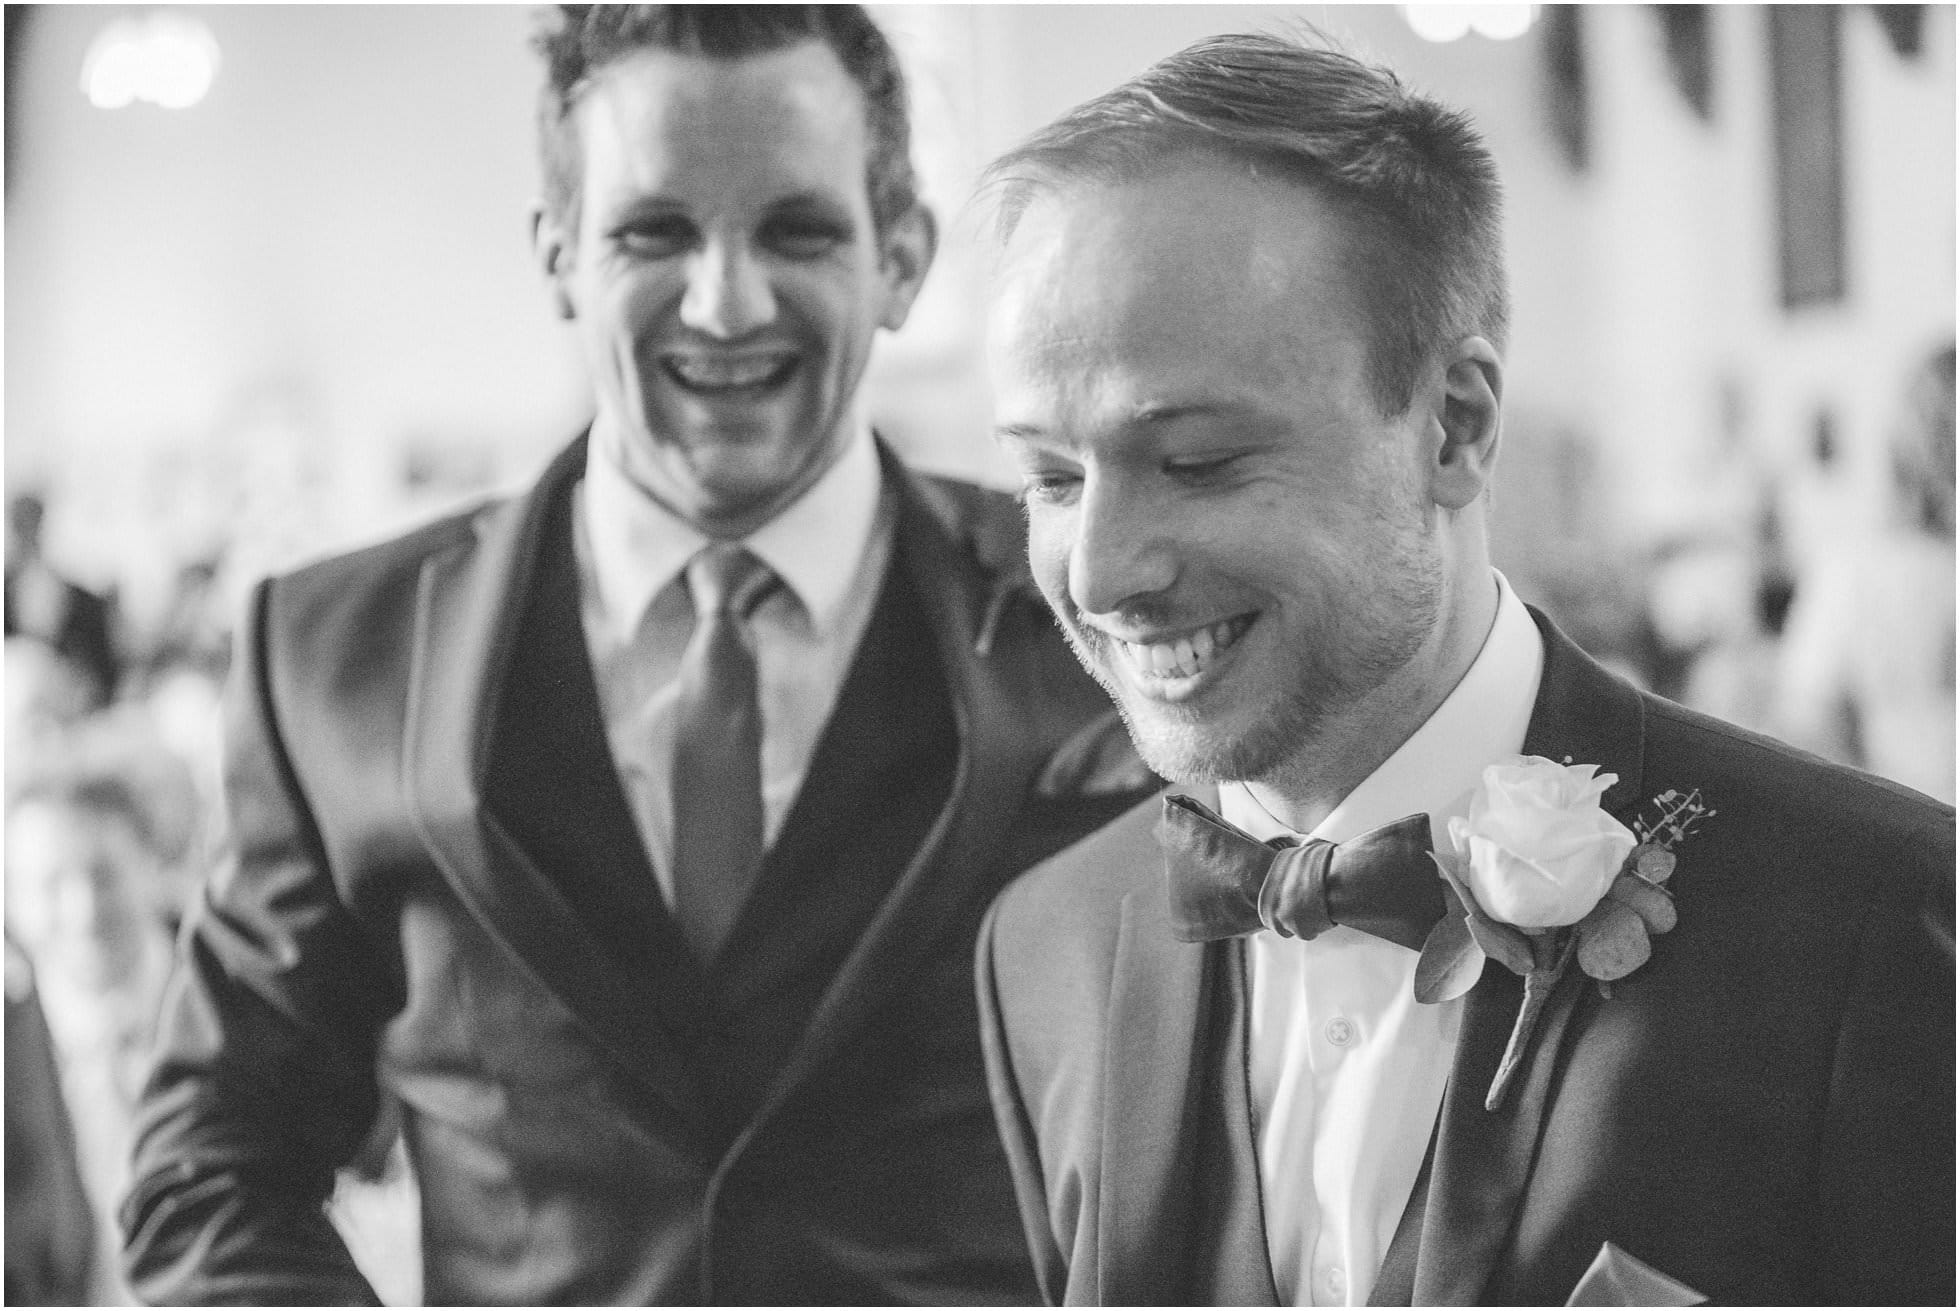 Unobtrusive wedding photography shot of groom and bestman